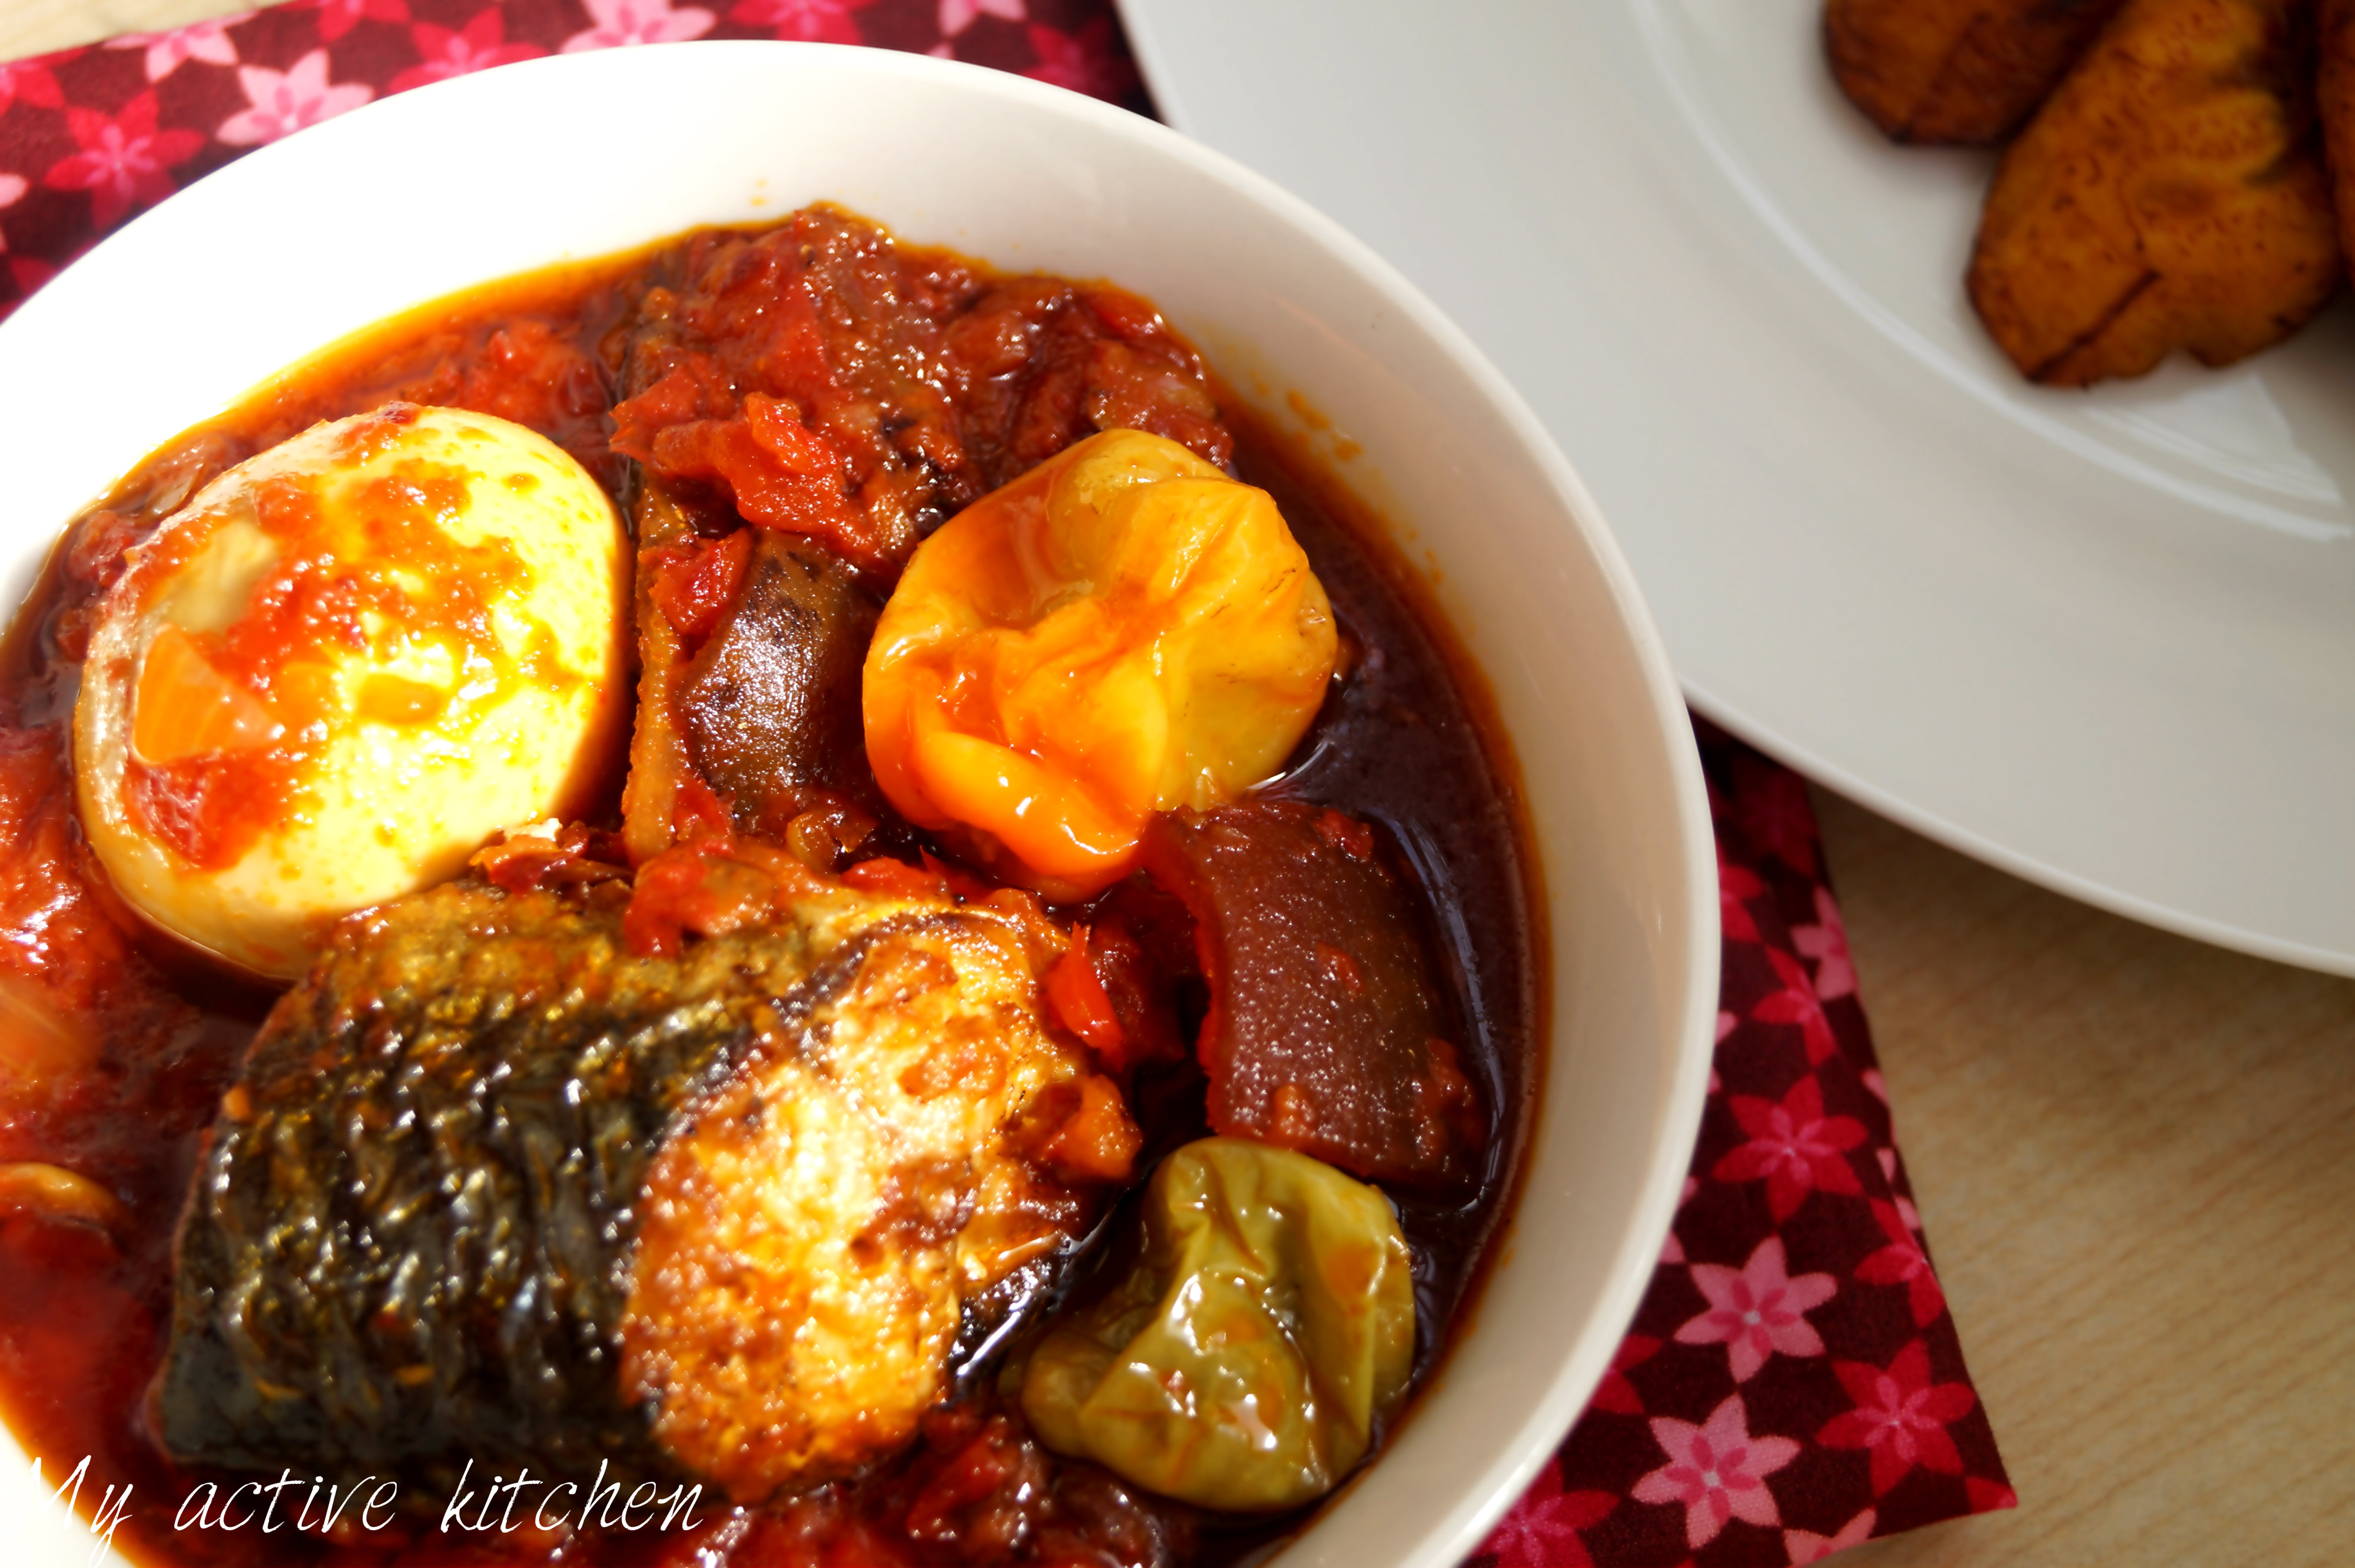 fried fish and stew